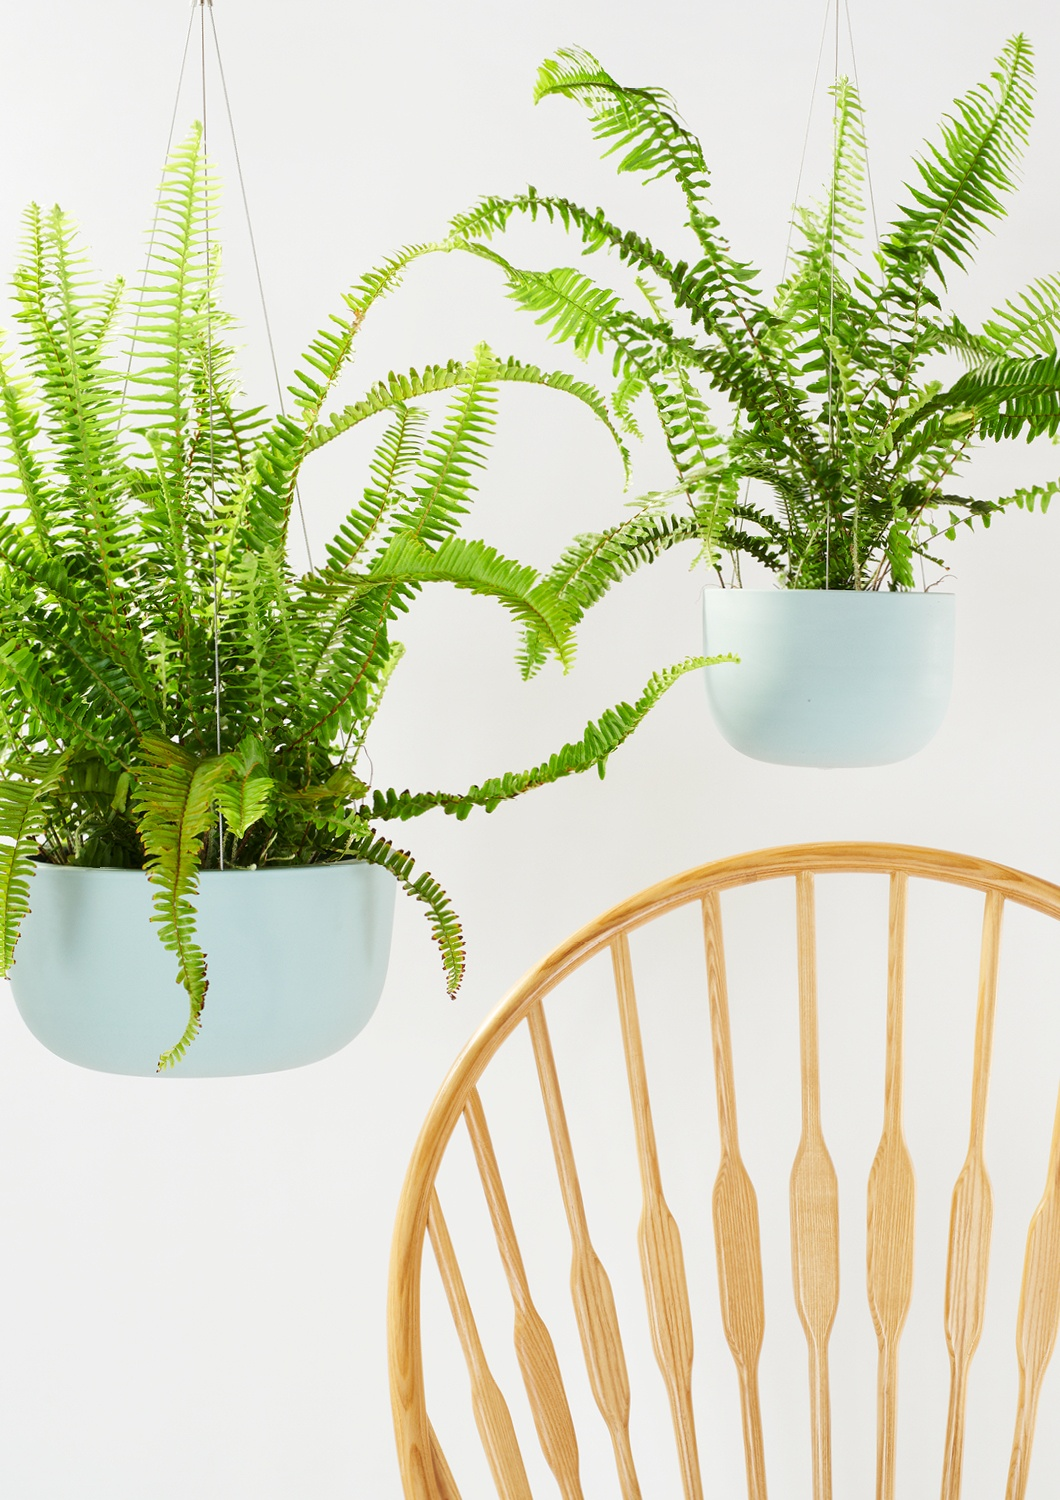 Angus & Celeste Raw Earth Hanging Planters Shale Green